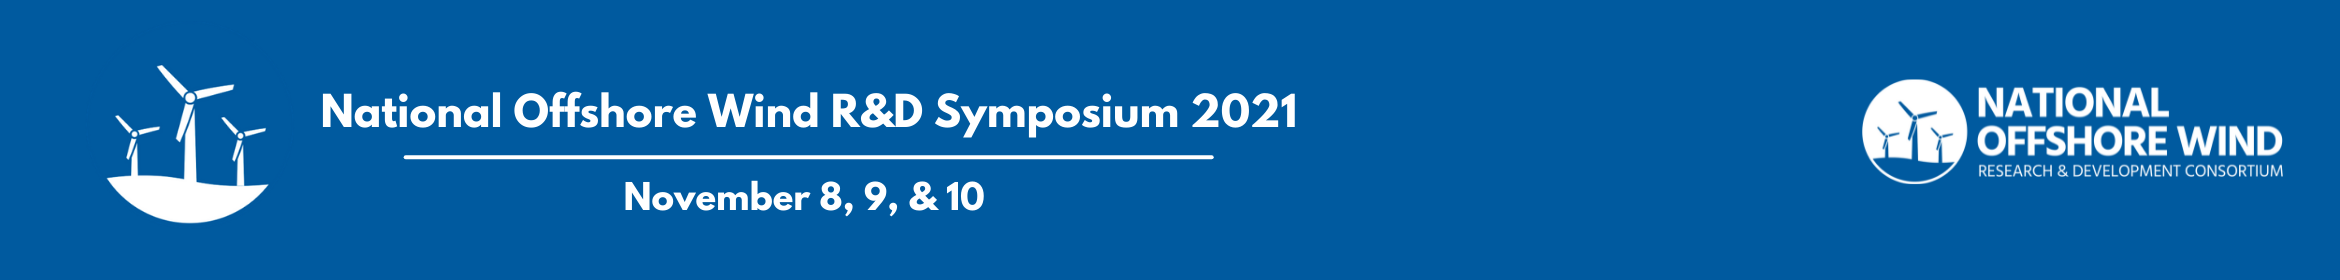 National Offshore Wind R&D Symposium 2021 Main banner